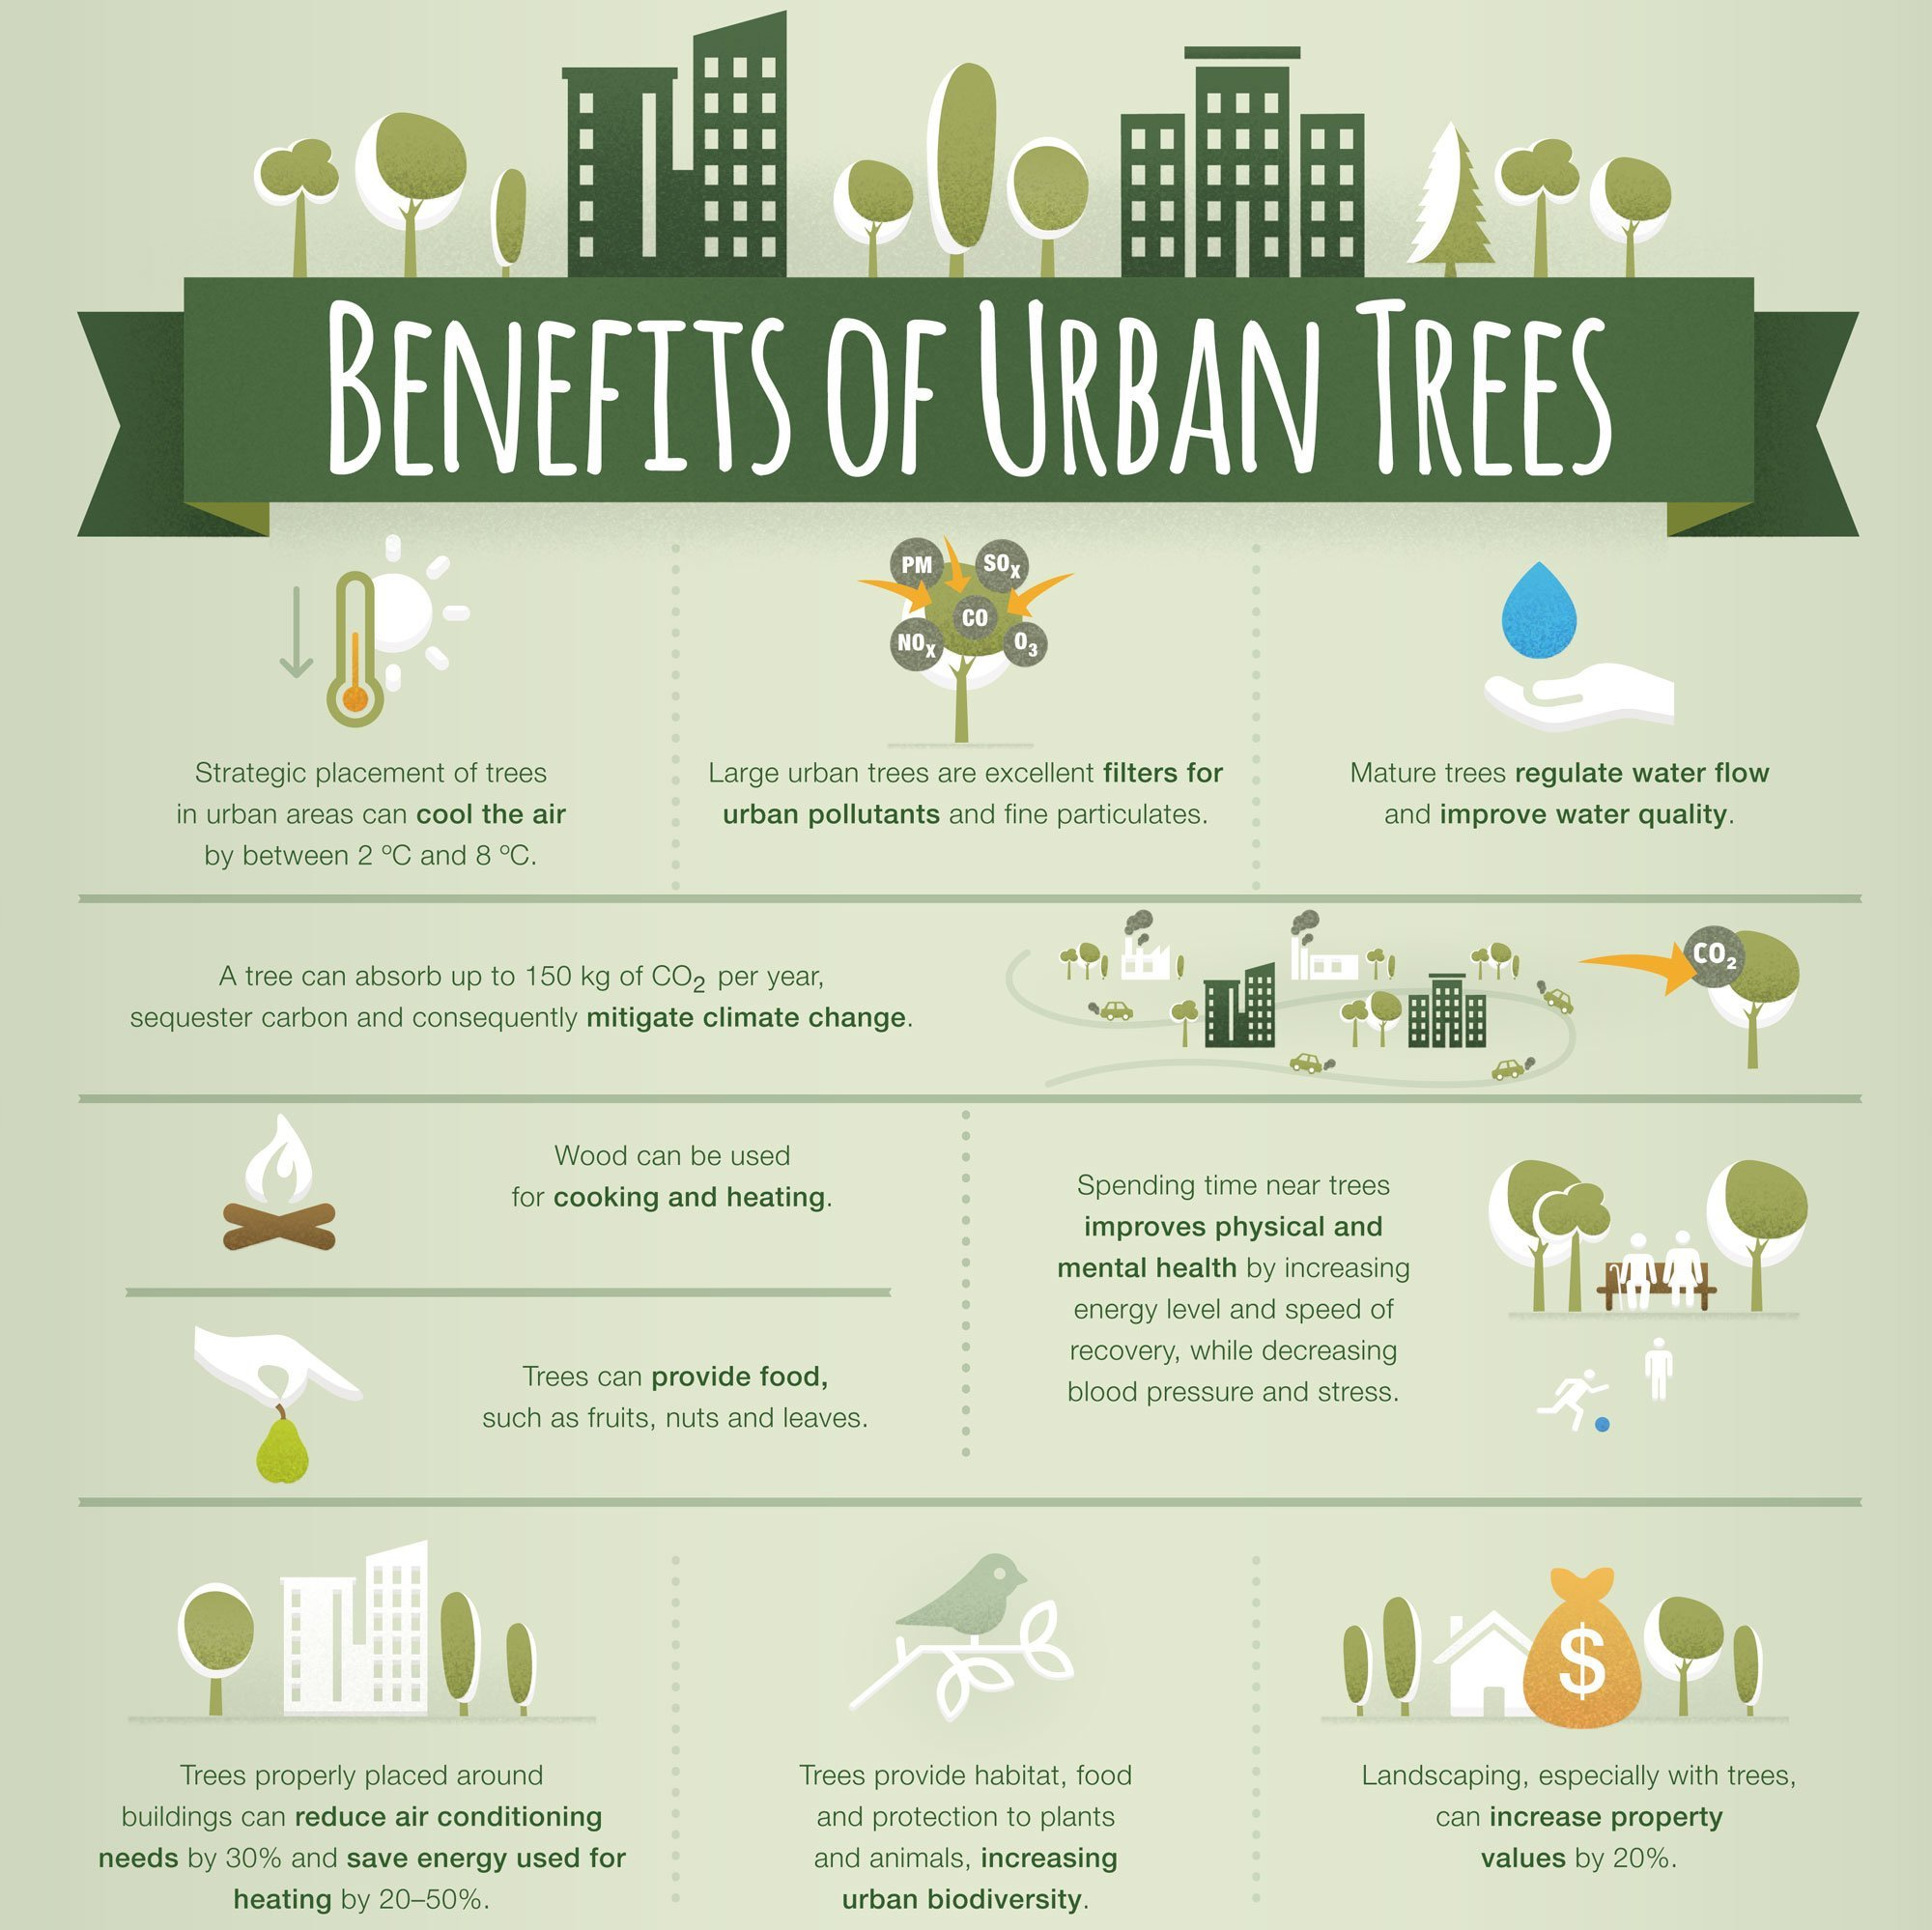 Large urban trees are excellent filters for urban pollutants and fine particulates.